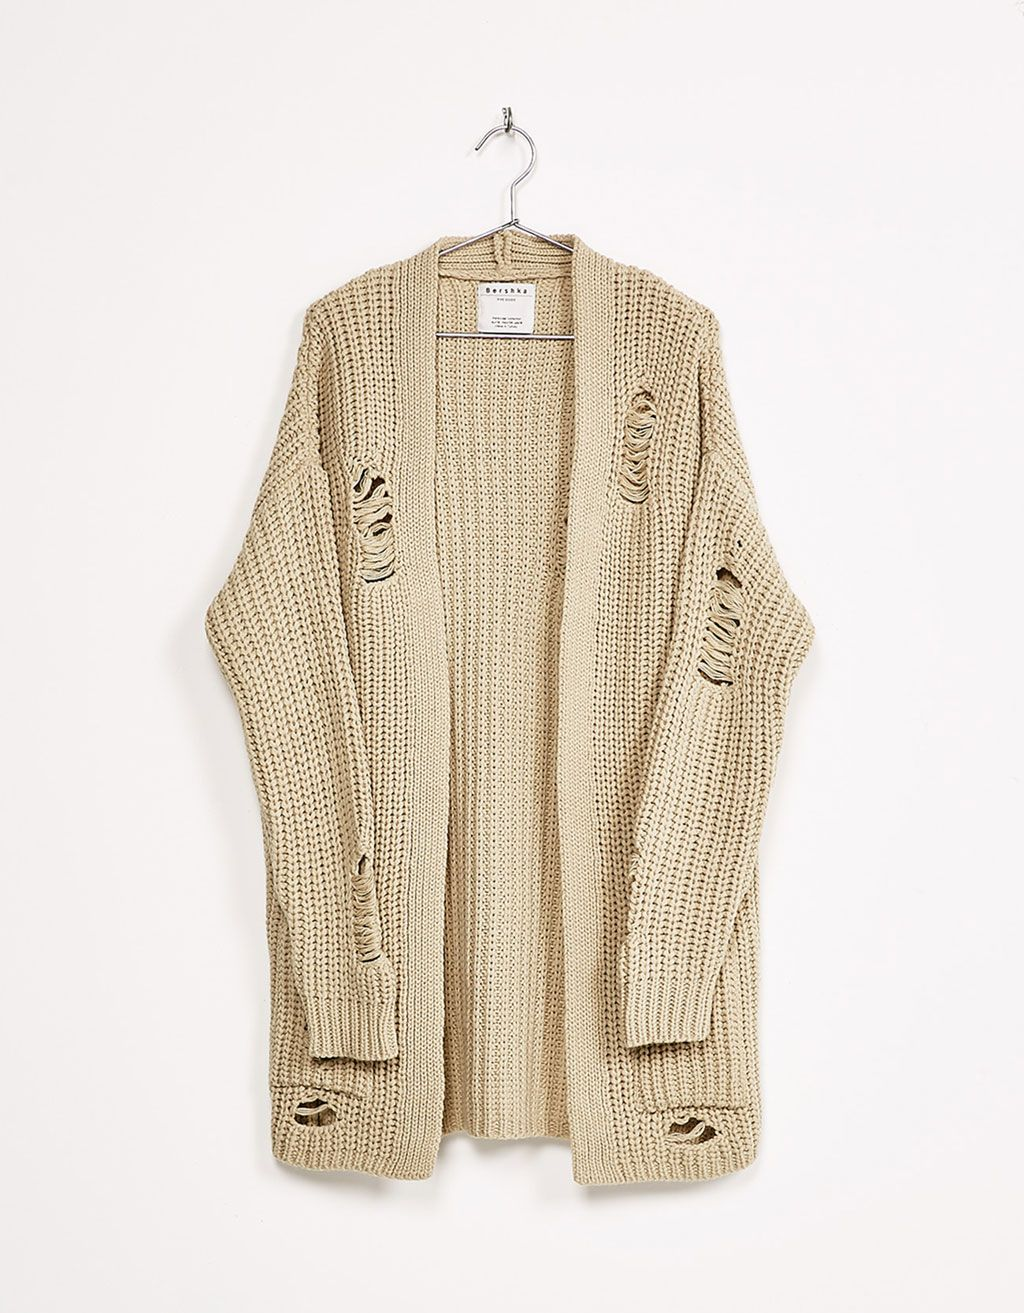 Ripped oversized jacket - Knitwear - Bershka United Kingdom